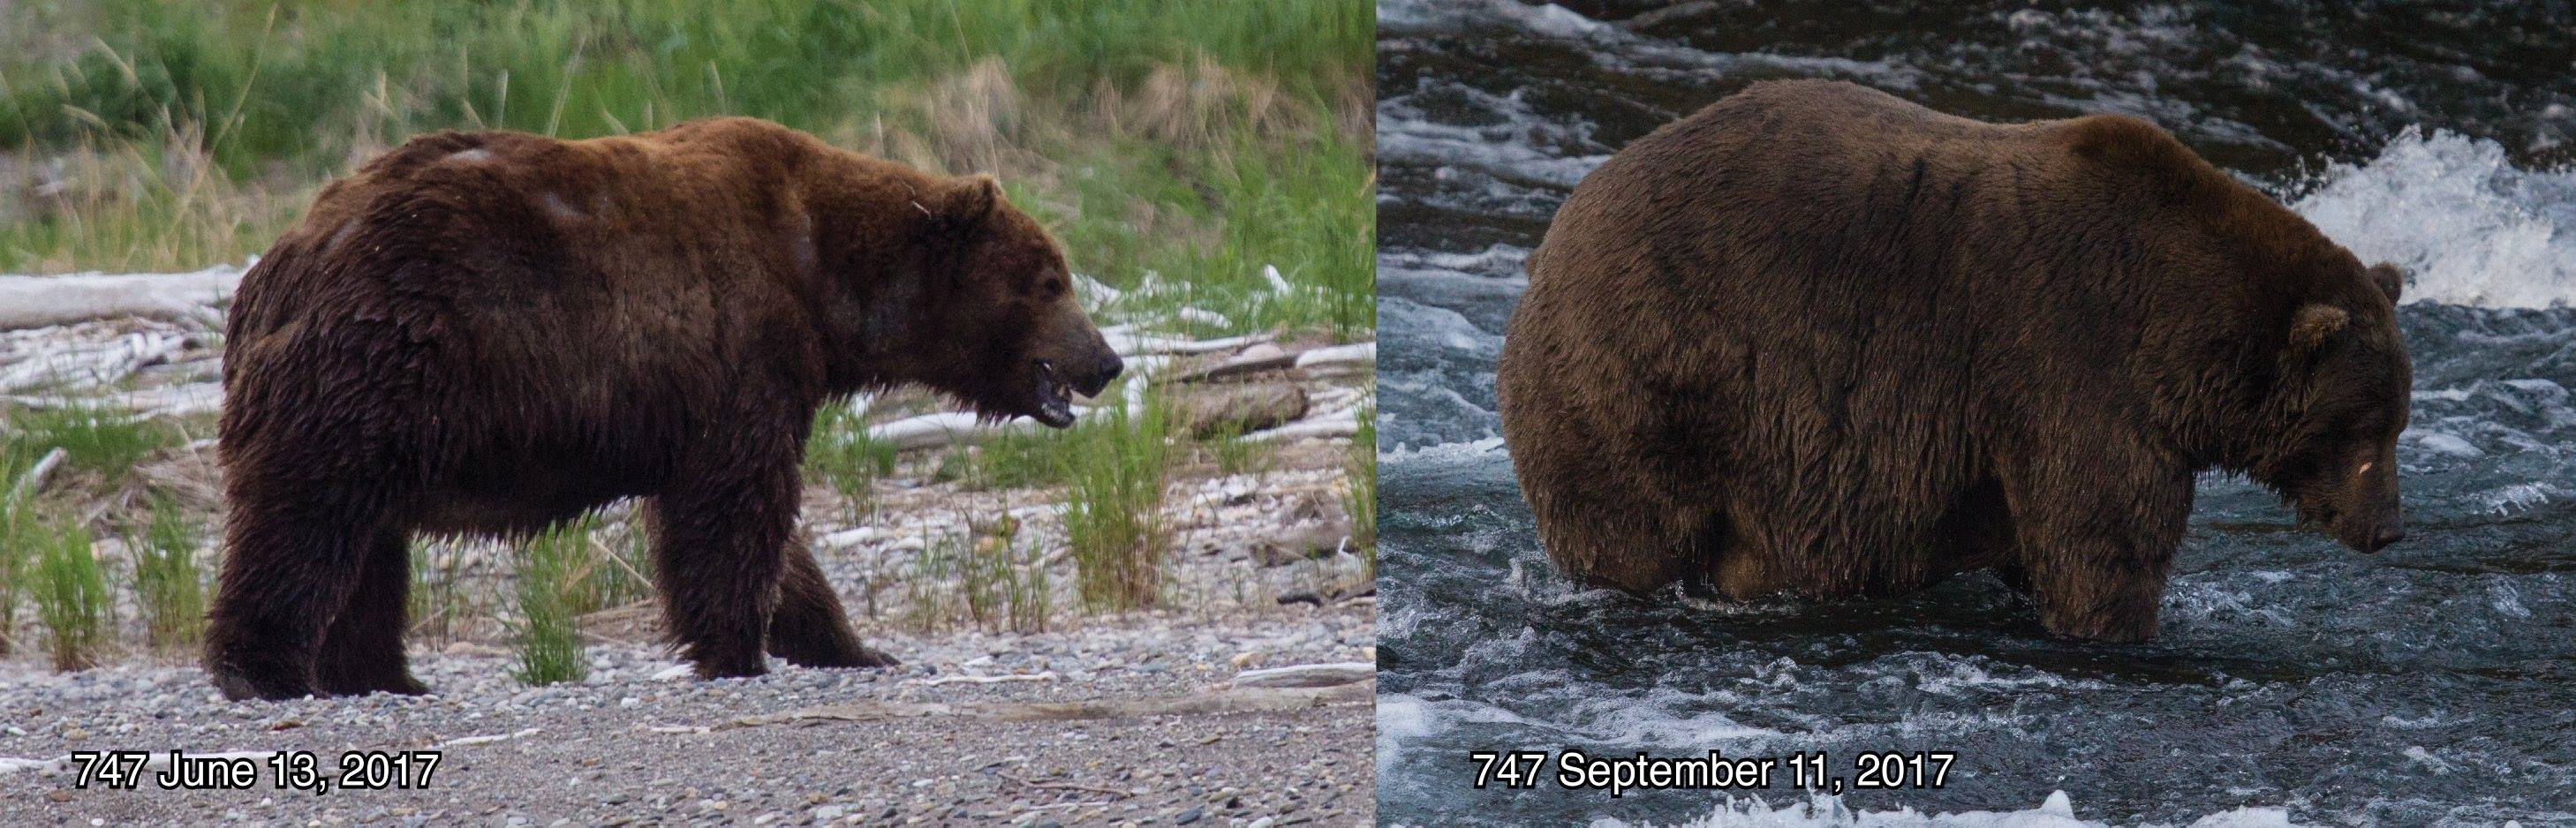 """Side-by-side comparison of bear in late spring and late summer. Text reads, """"747 June 13, 2107"""" """"747 September 11, 2017"""""""